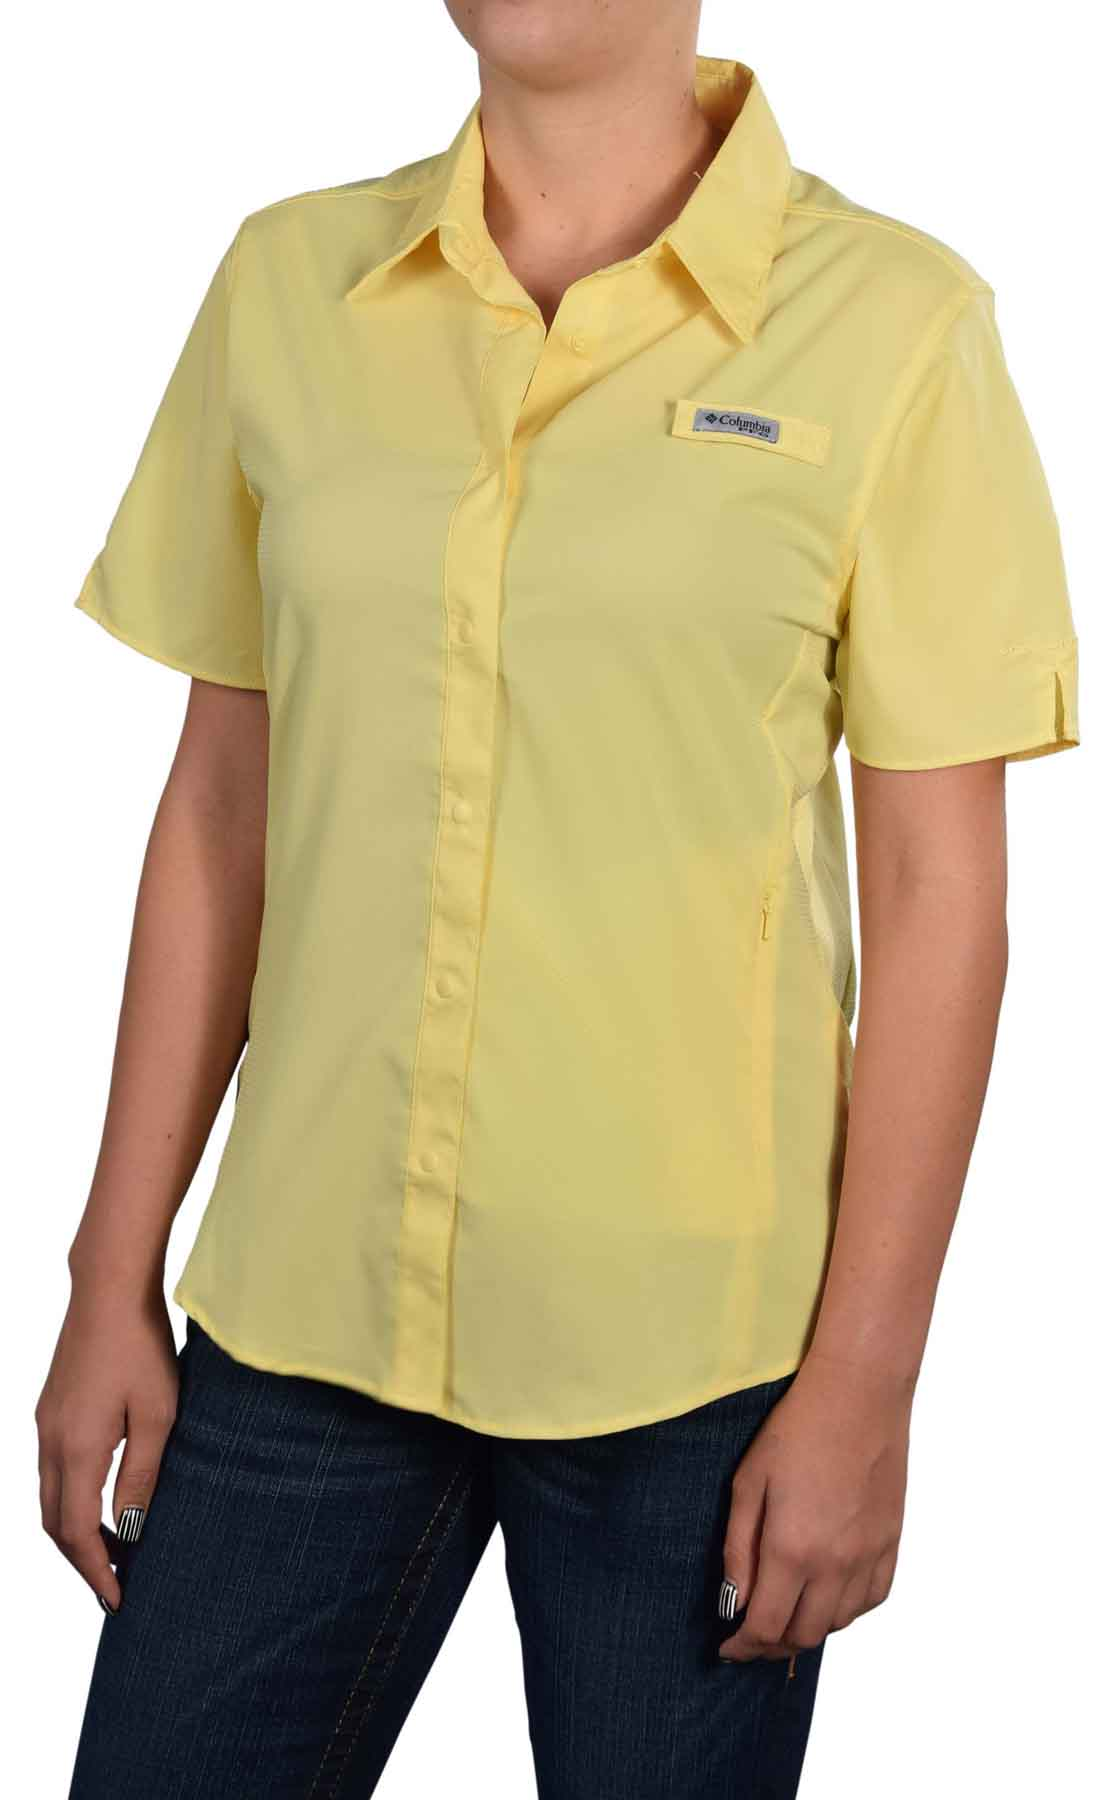 Columbia women 39 s crystal springs pfg short sleeve shirt ebay for Columbia shirts womens pfg